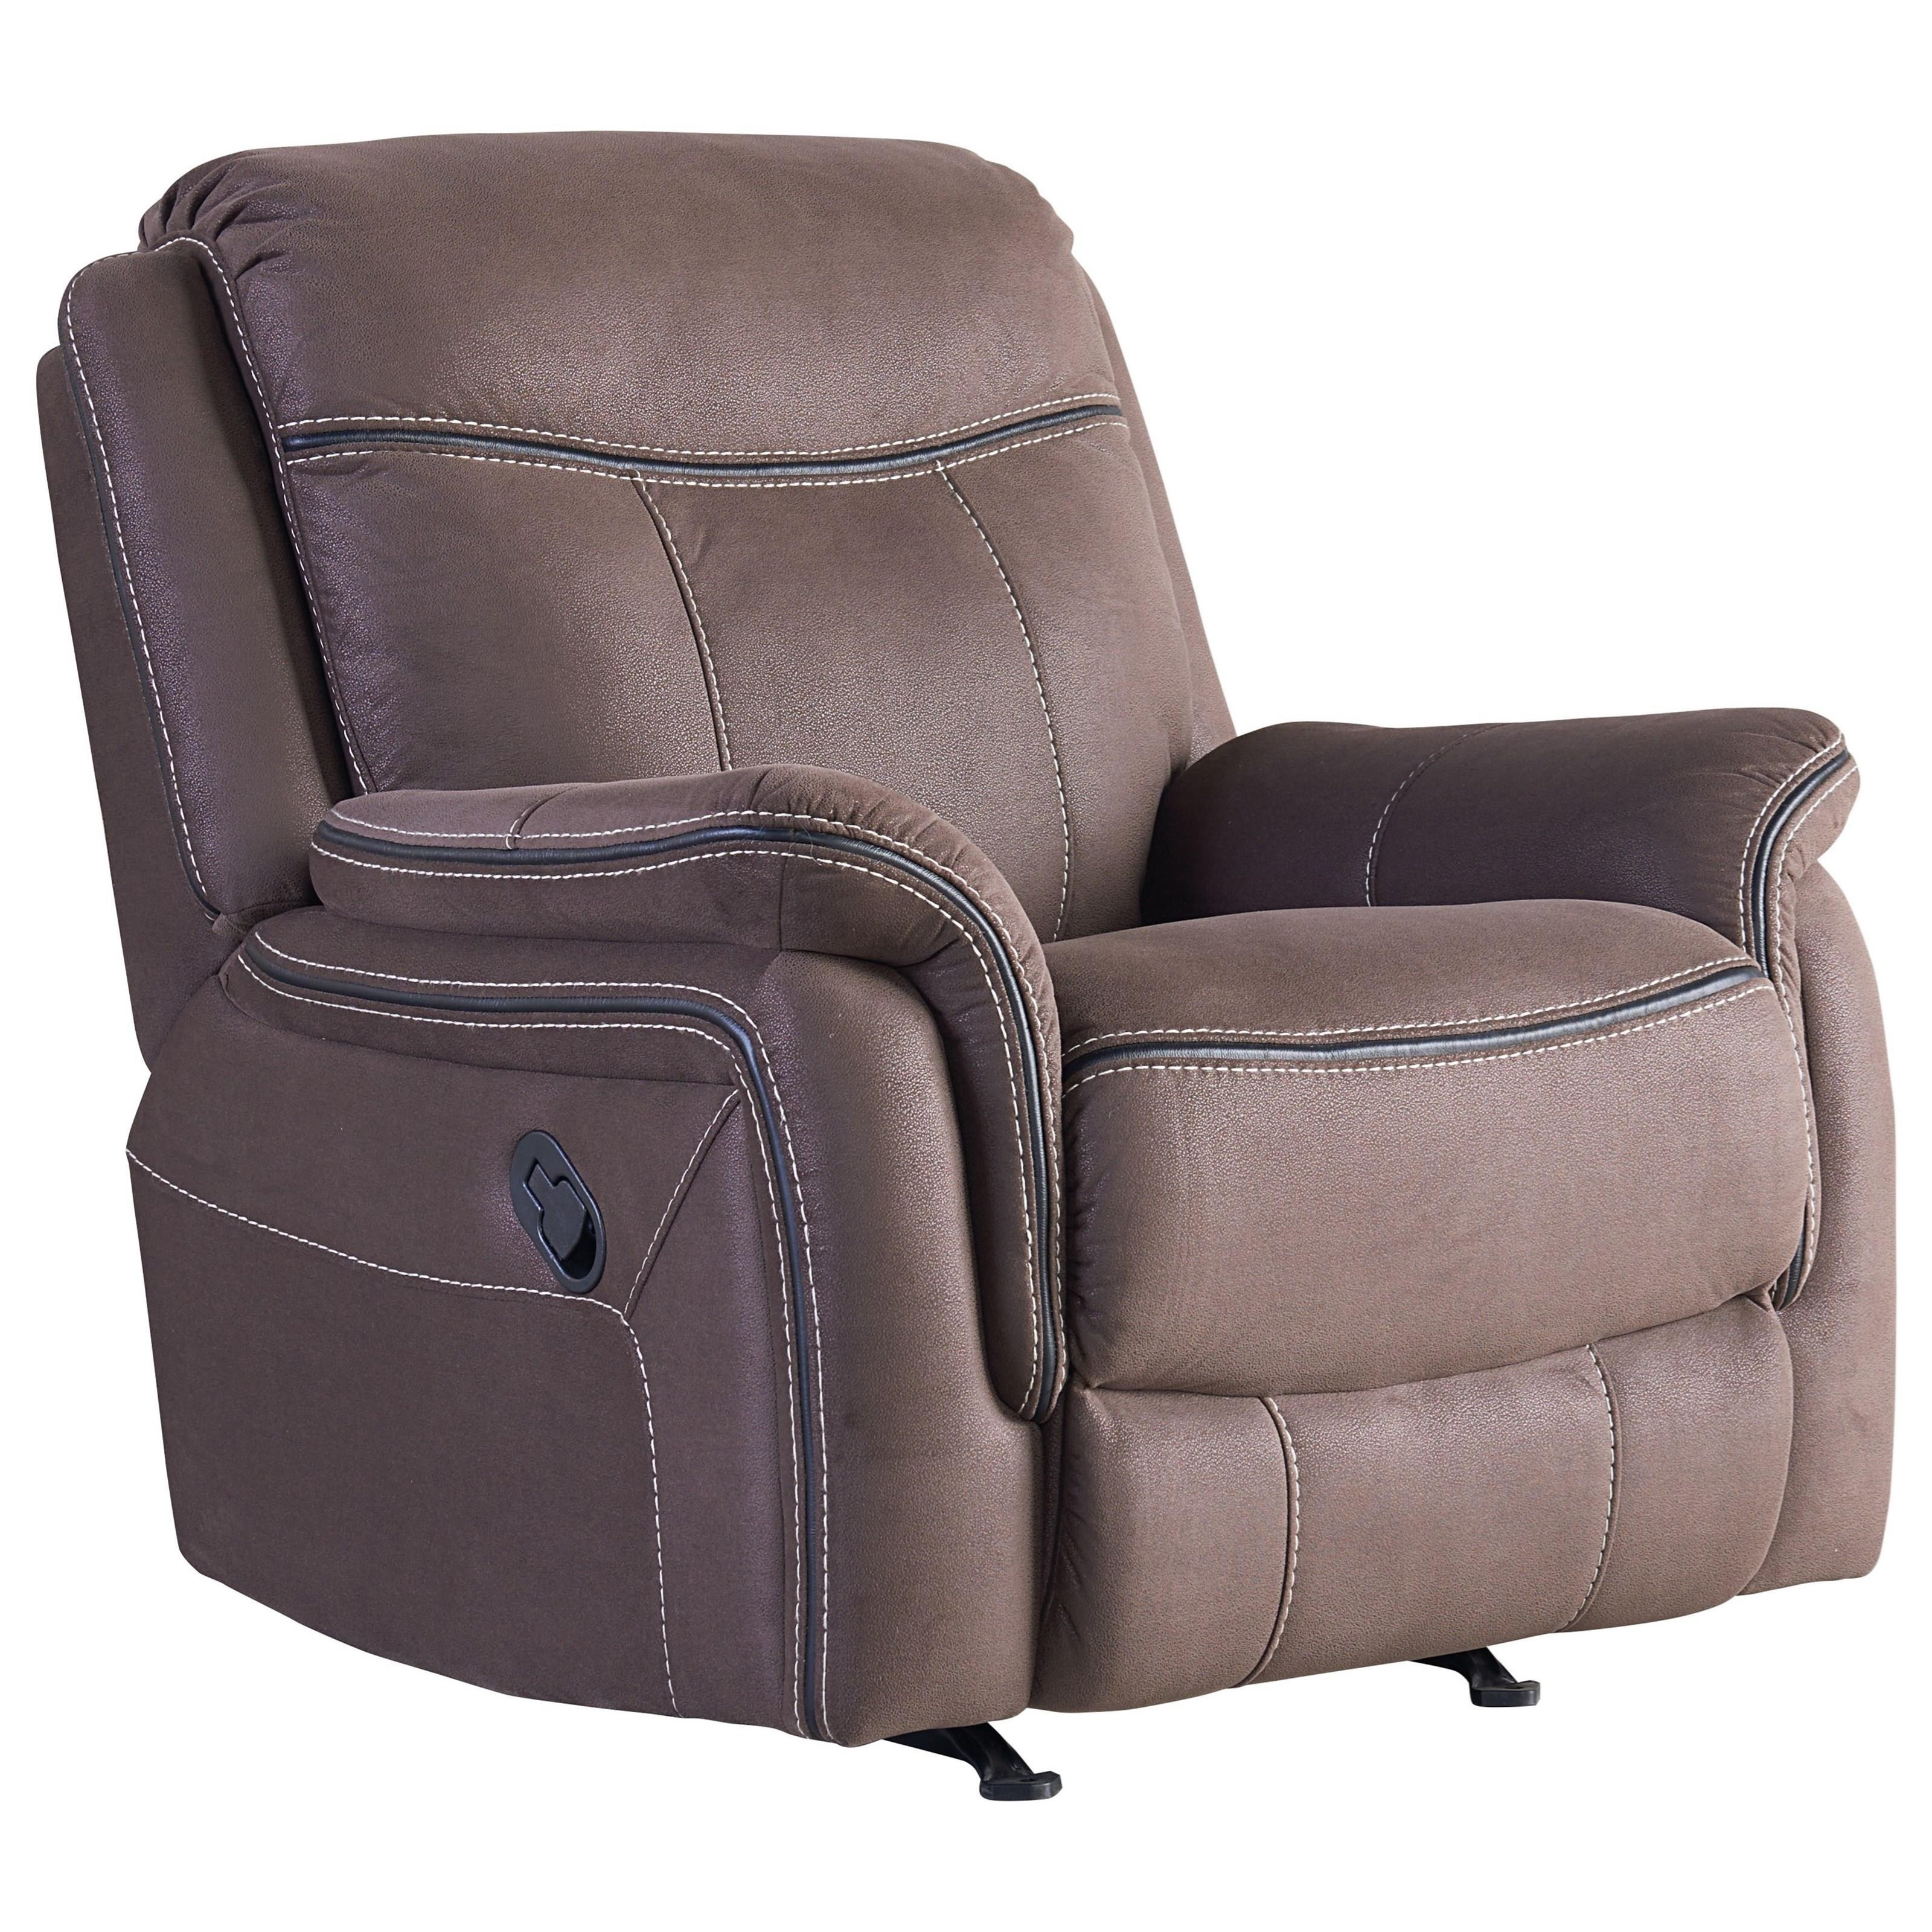 Manual Rocker Recliner With Luggage Style Topstitching